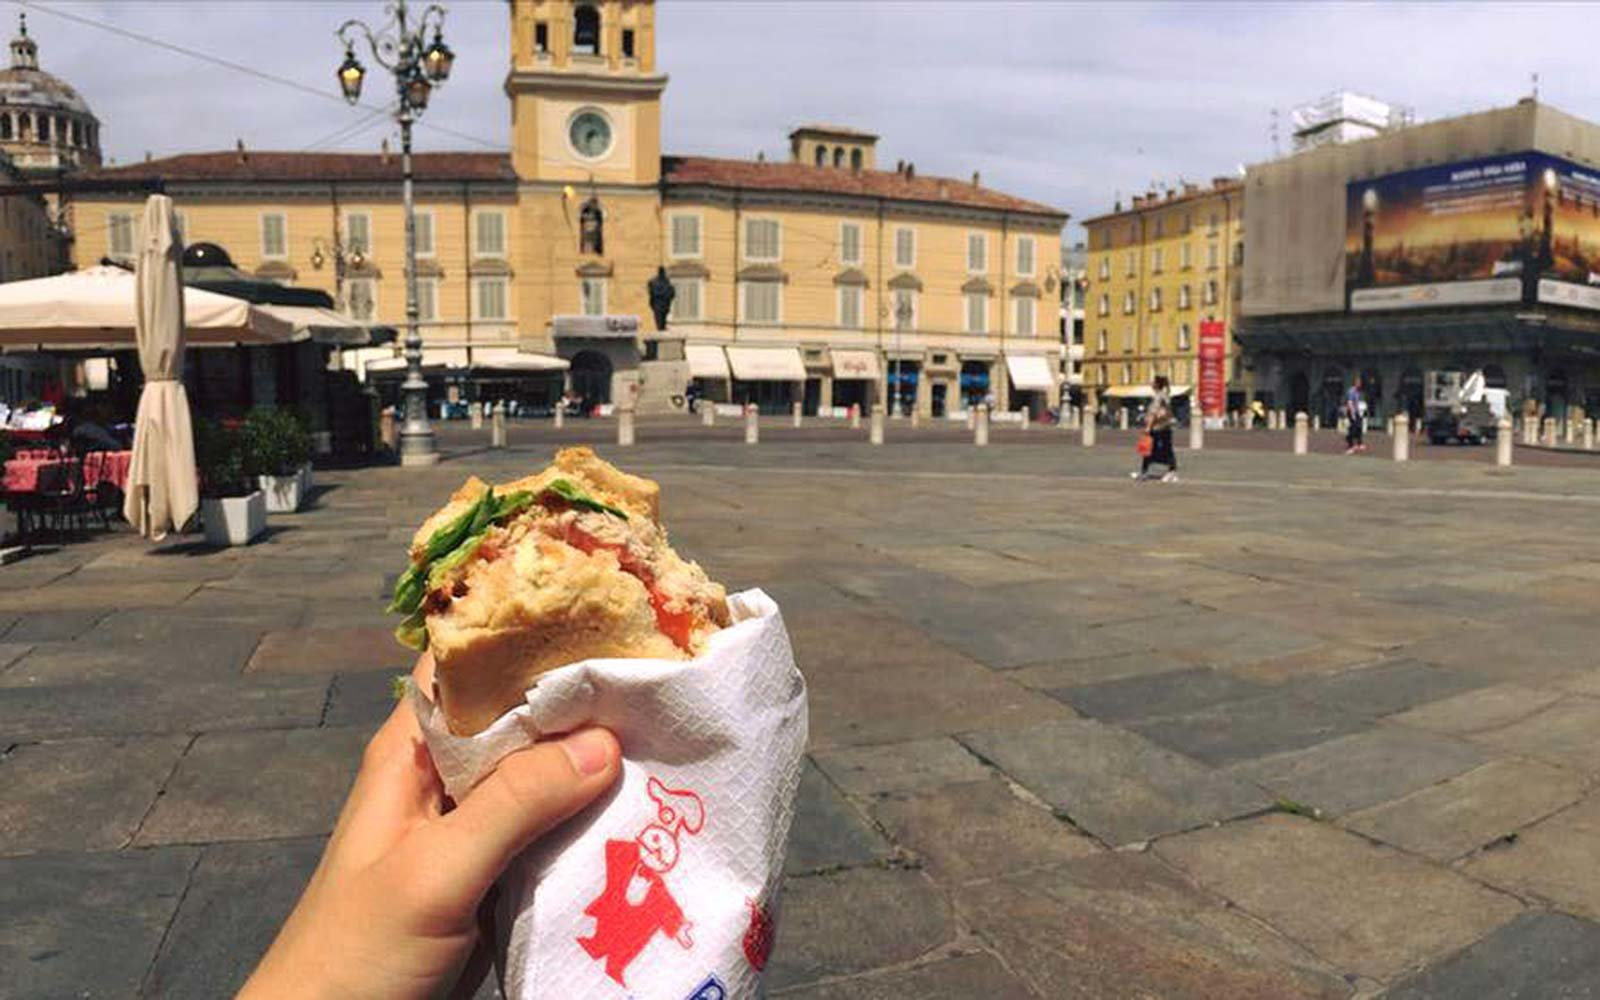 Valentina Bertazzoni Parma Italy Guide Pepen street food sandwich